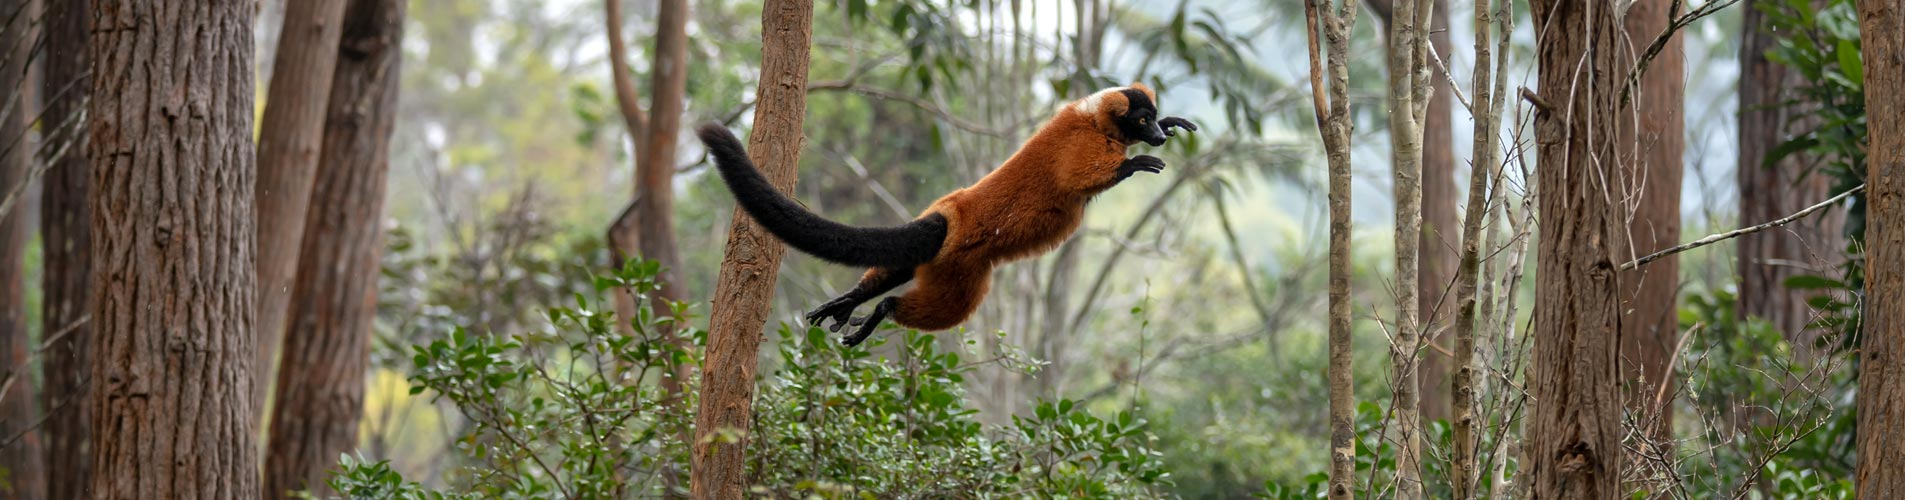 Madagascar Safari Red Ruffed Lemur